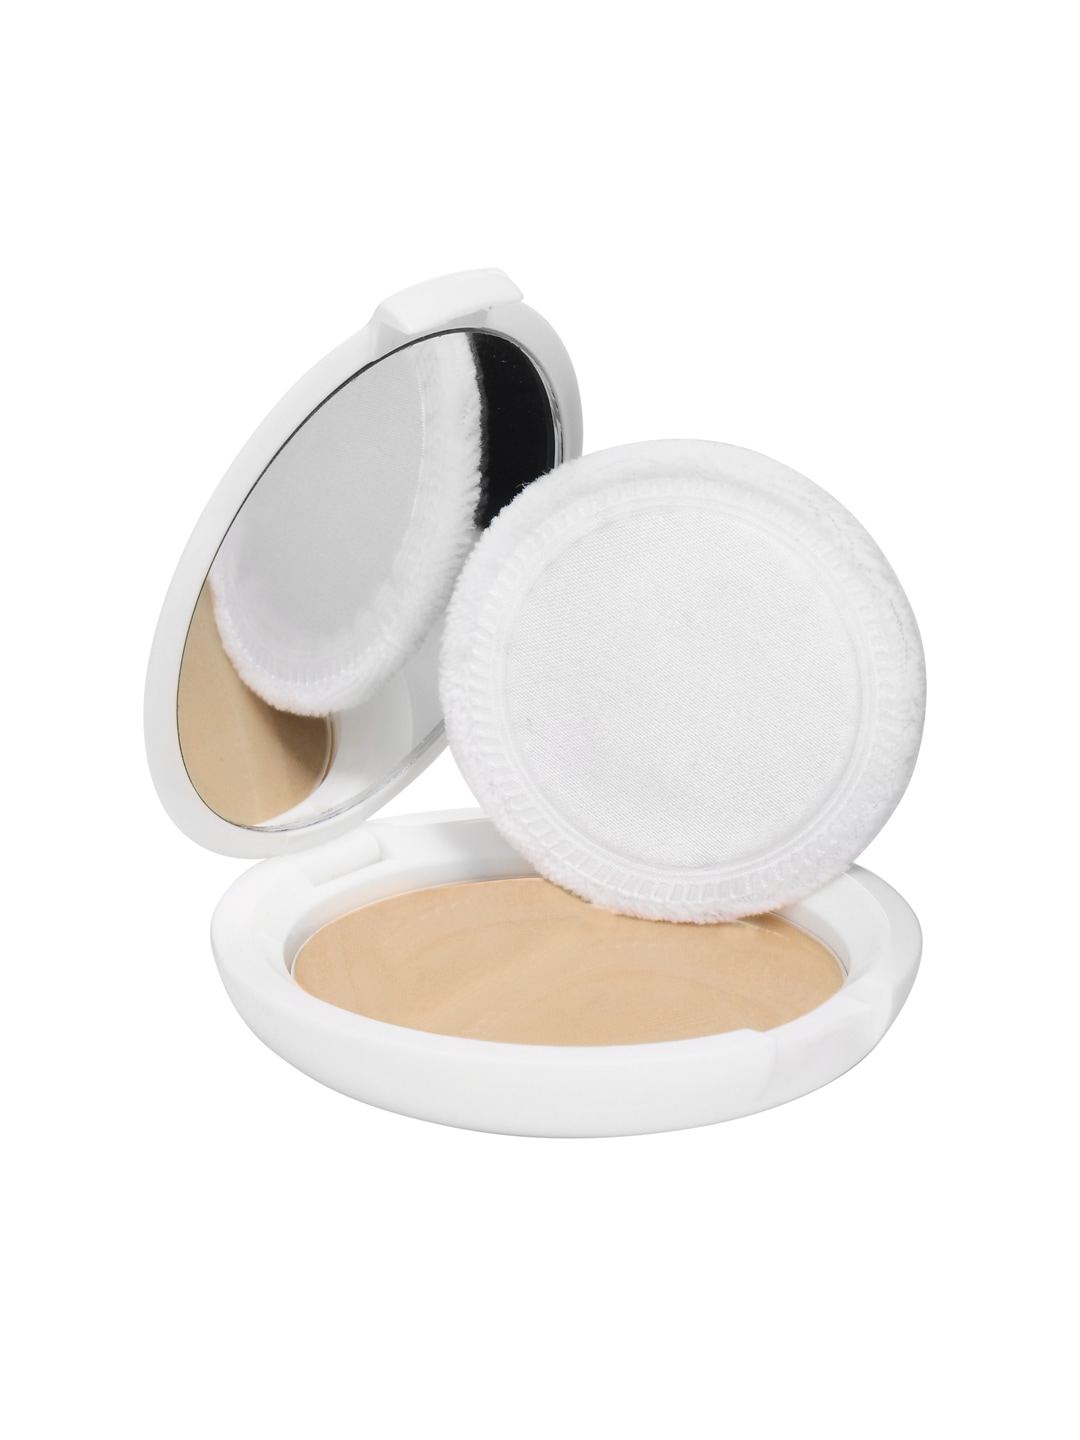 ColorBar Shell Radiant White UV Fairness Compact 002 image